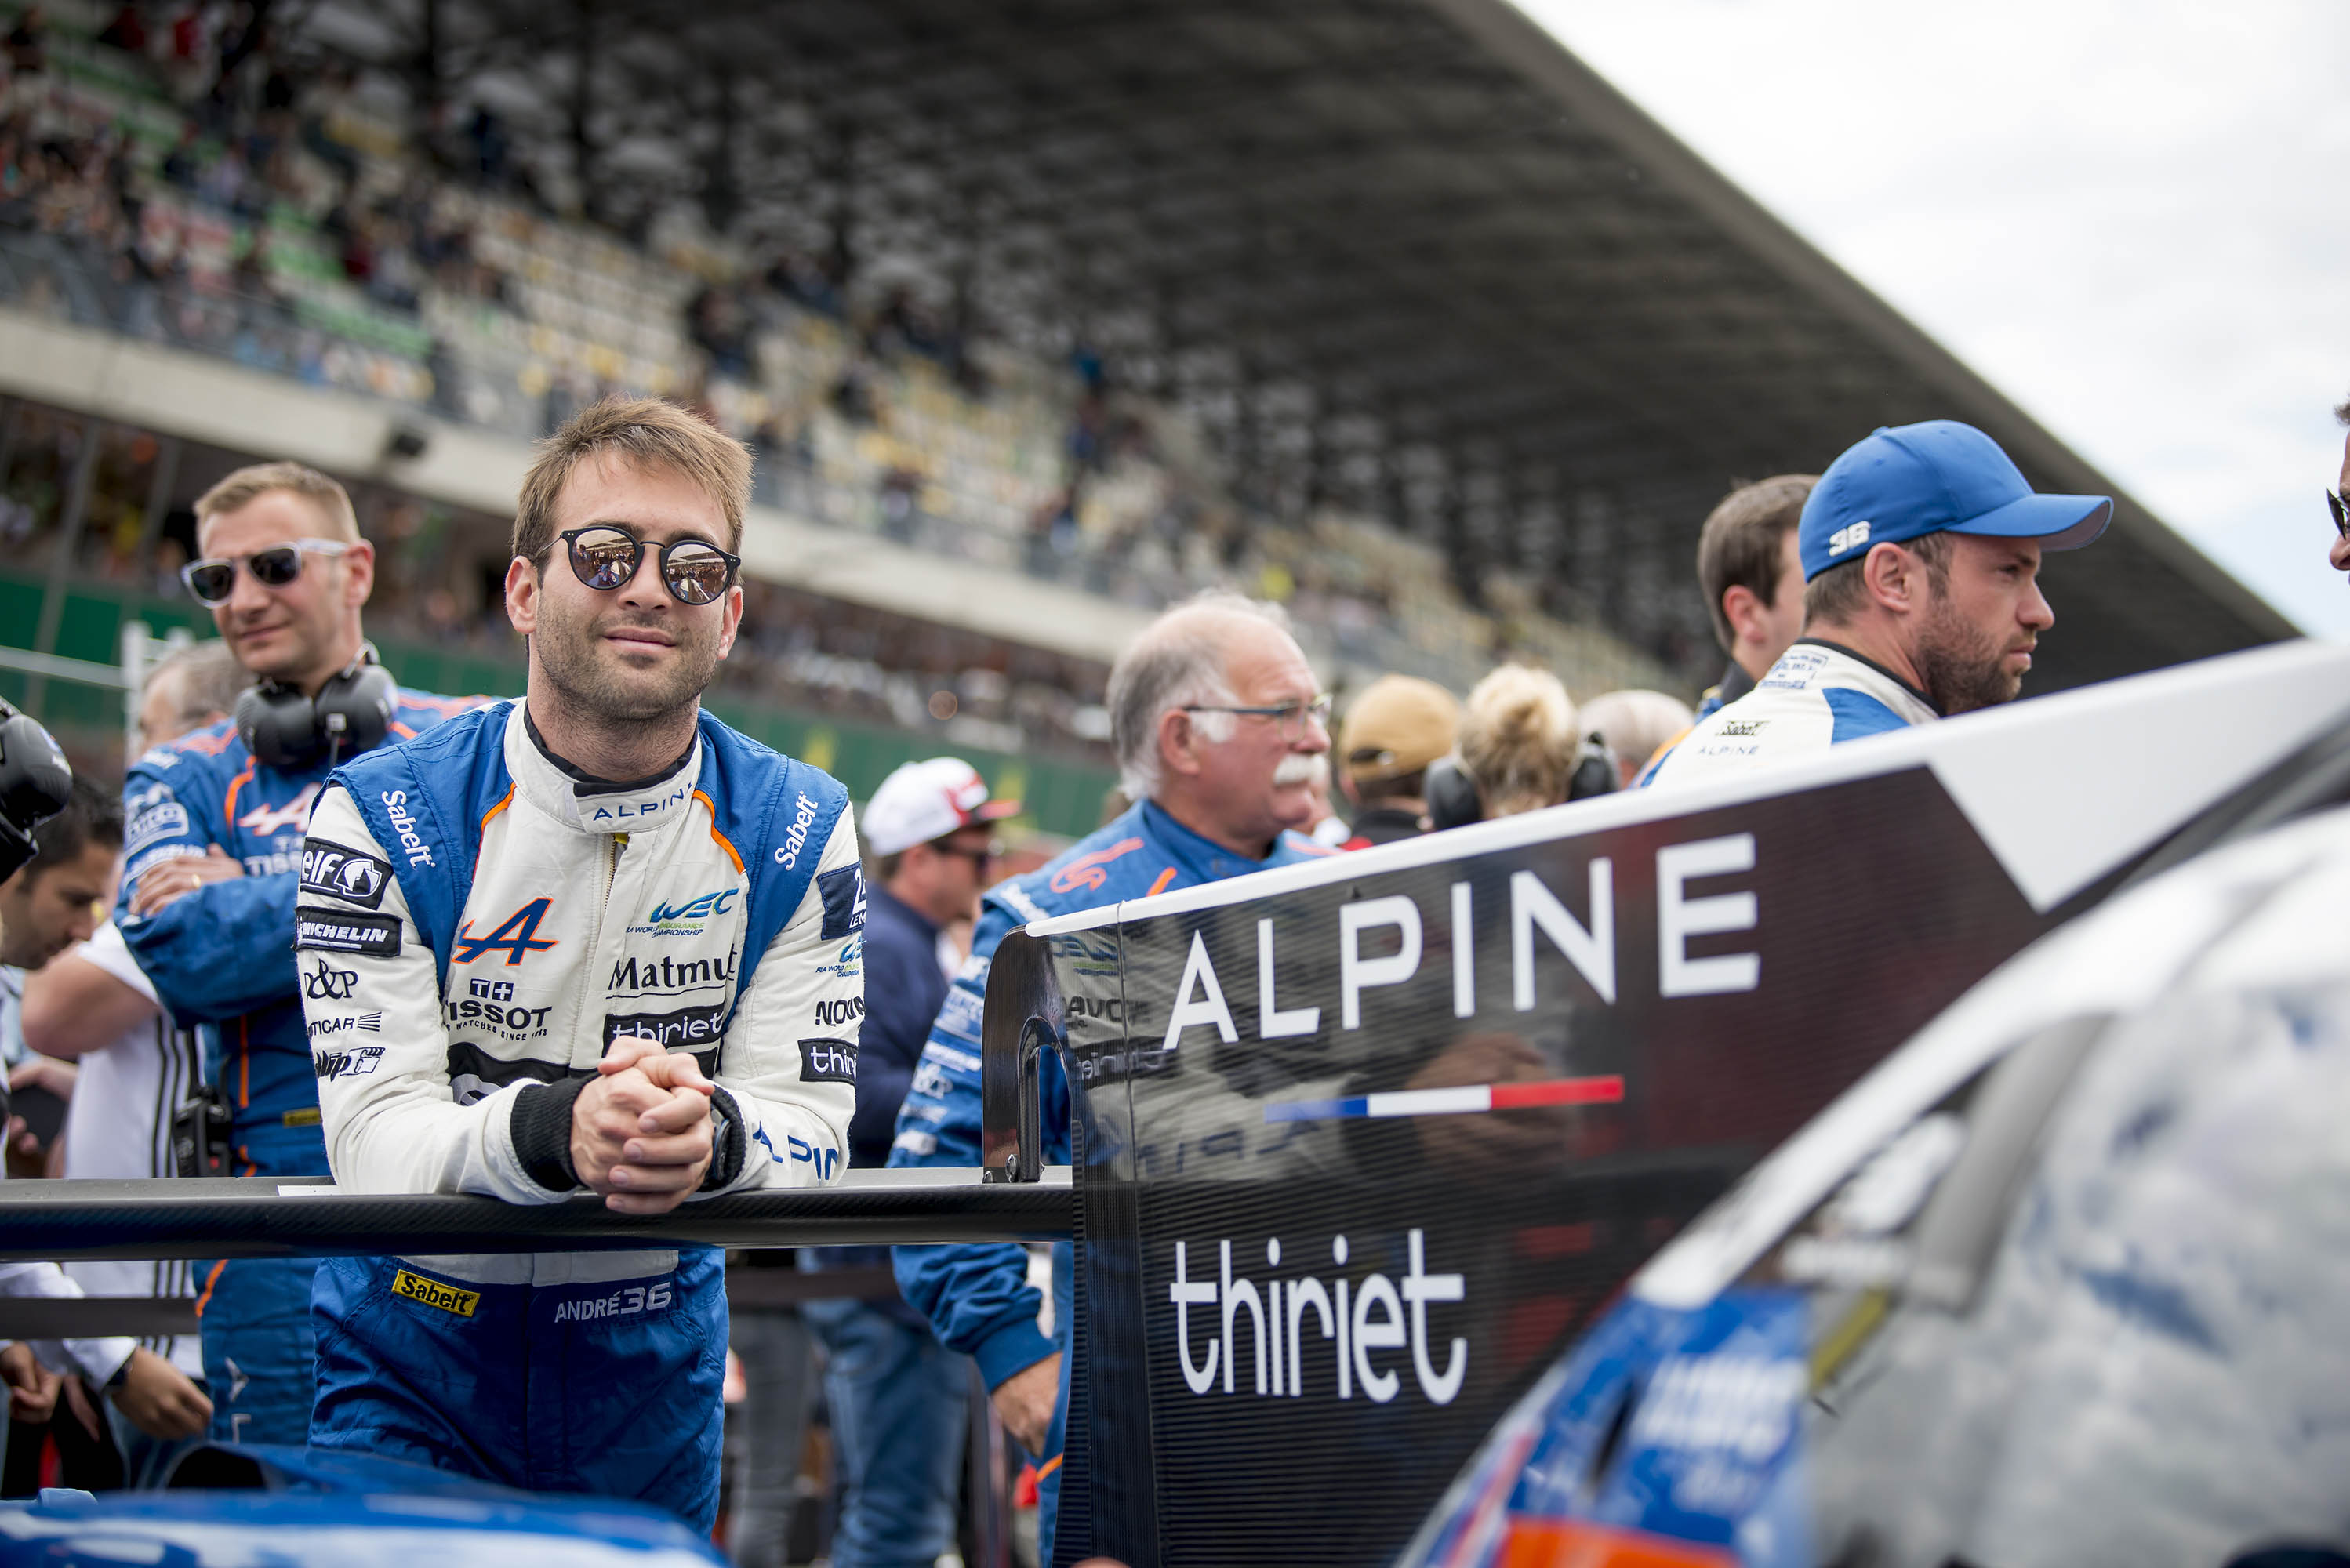 MRS_Alpine_LeMans2019_02006